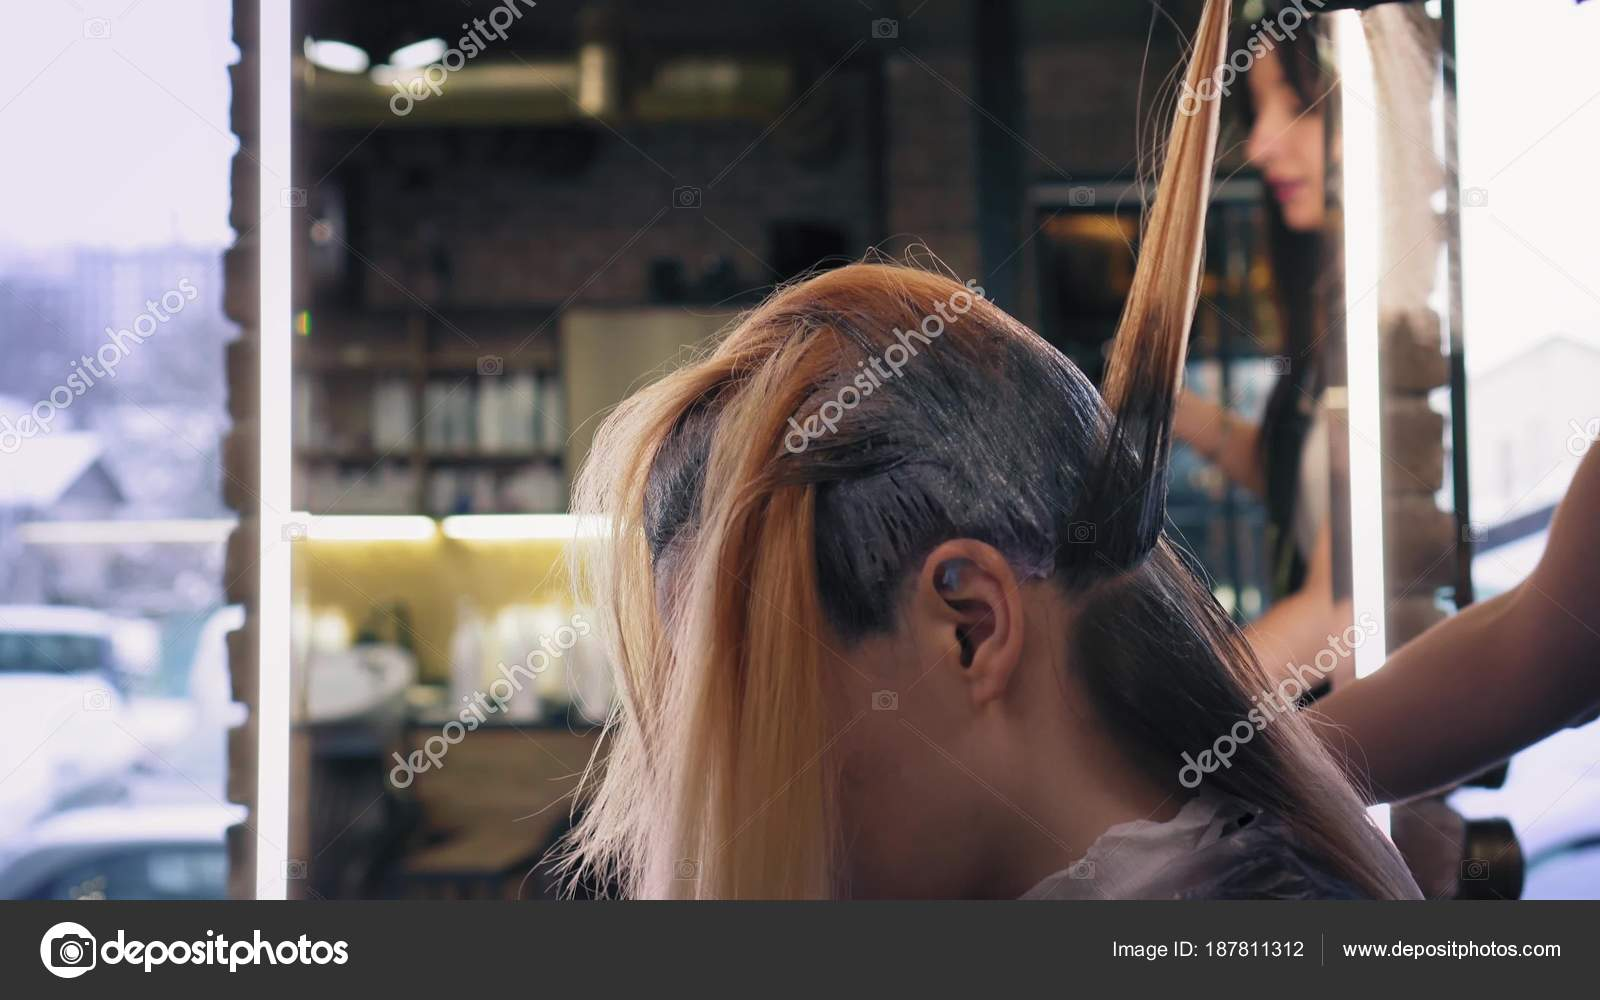 Hairdresser In Black Professional Gloves Applies Hair Dye On Long